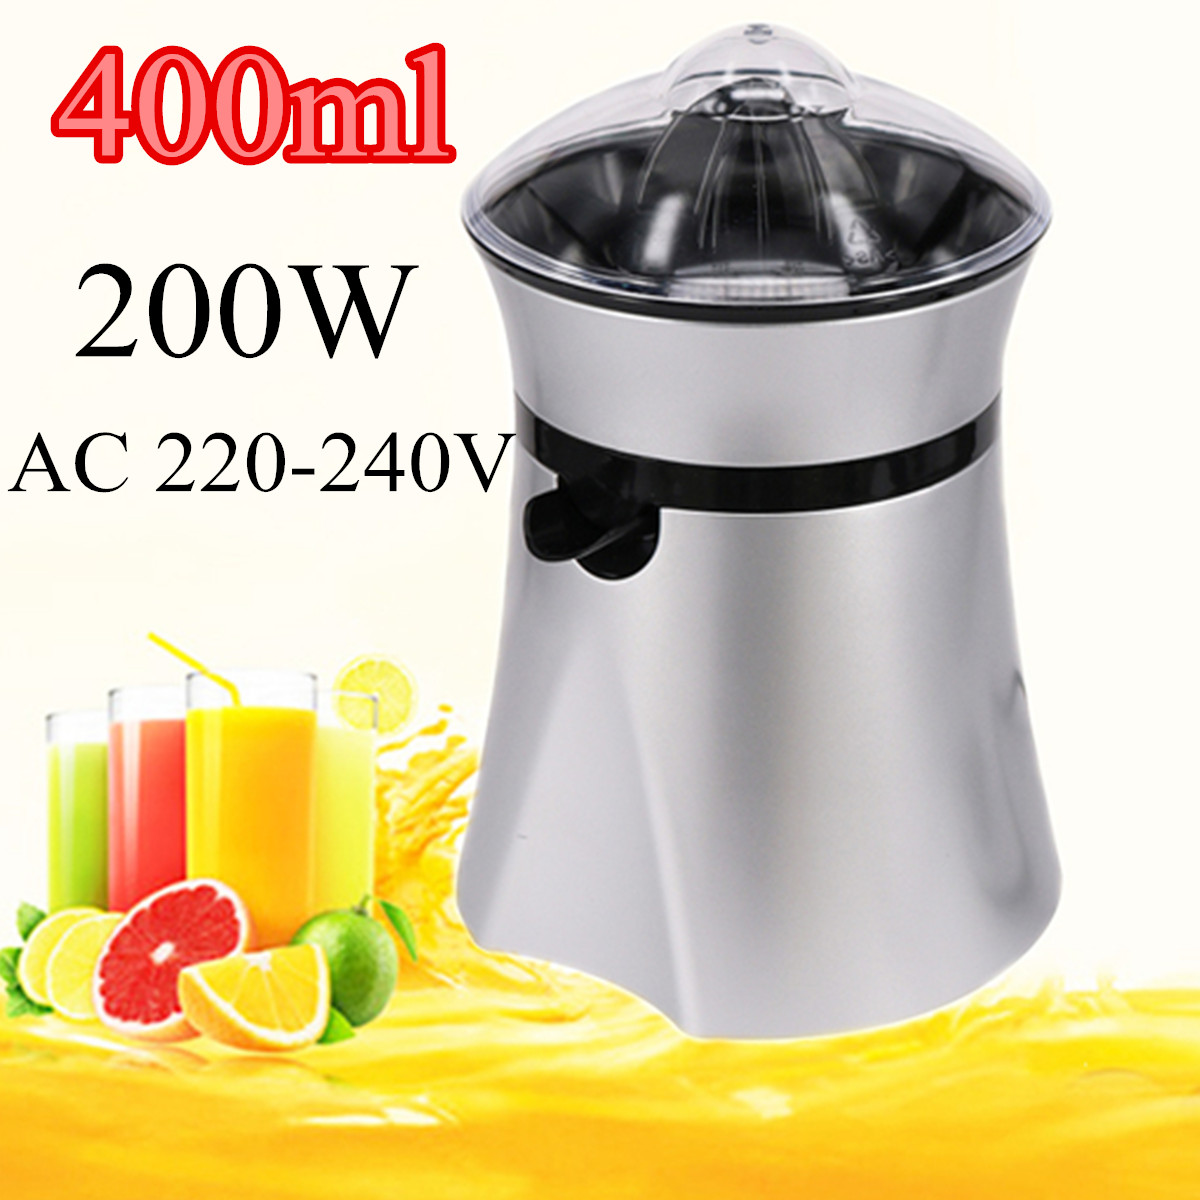 200W Electric Juicer Stainless Steel Citrus Orange Fruit Lemon Squeezer Juice Extractor Juice Presser Fruit Drinking Machine